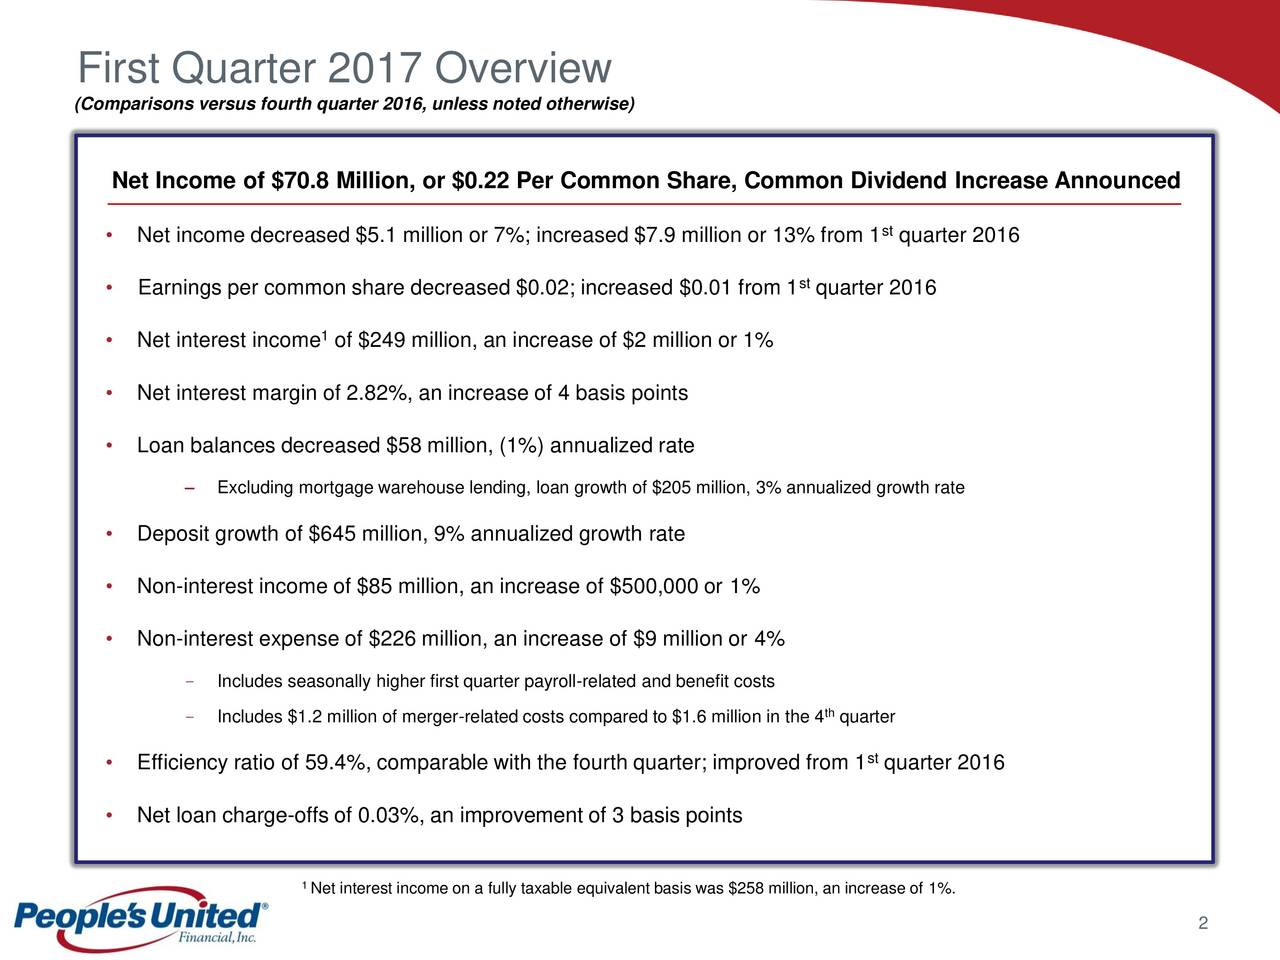 (Comparisons versus fourth quarter 2016, unless noted otherwise) Net Income of $70.8 Million, or $0.22 Per Common Share, Common Dividend Increase Announced Net income decreased $5.1 million or 7%; increased $7.9 million or 13% from 1 quarter 2016st Earnings per common share decreased $0.02; increased $0.01 from 1 quarter 2016 st 1 Net interest income of $249 million, an increase of $2 million or 1% Net interest margin of 2.82%, an increase of 4 basis points Loan balances decreased $58 million, (1%) annualized rate Excluding mortgage warehouse lending, loan growth of $205 million, 3% annualized growth rate Deposit growth of $645 million, 9% annualized growth rate Non-interest income of $85 million, an increase of $500,000 or 1% Non-interest expense of $226 million, an increase of $9 million or 4% - Includes seasonally higher first quarter payroll-related and benefit costs - Includes $1.2 million of merger-related costs compared to $1.6 million in the 4 quarter Efficiency ratio of 59.4%, comparable with the fourth quarter; improved from 1 quarter 2016 Net loan charge-offs of 0.03%, an improvement of 3 basis points 1 Net interest income on a fully taxable equivalent basis was $258 million, an increase of 1%. 2